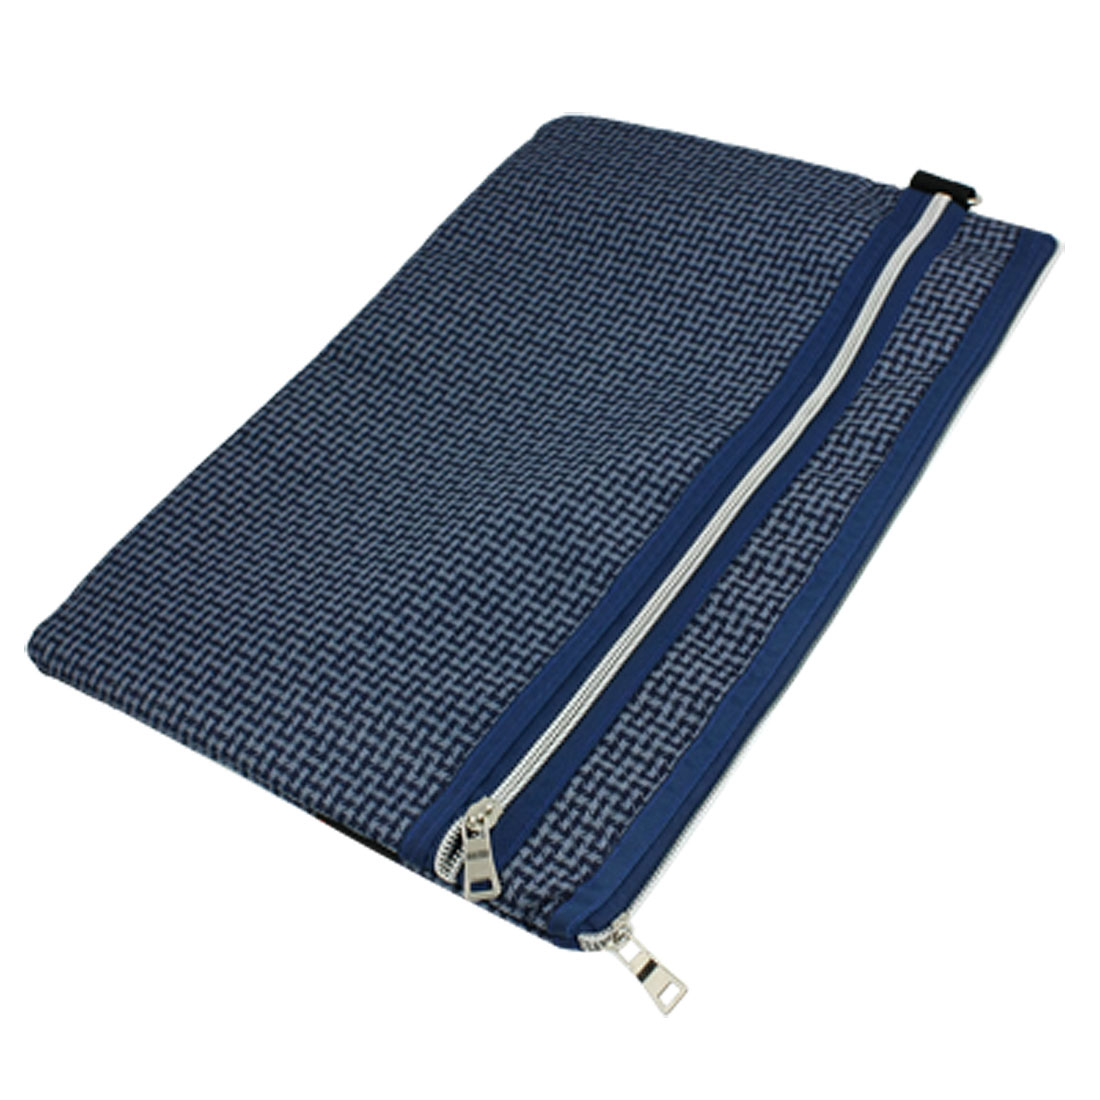 Zipper Closure Nylon Lining Blue Carrying File Bag Holder